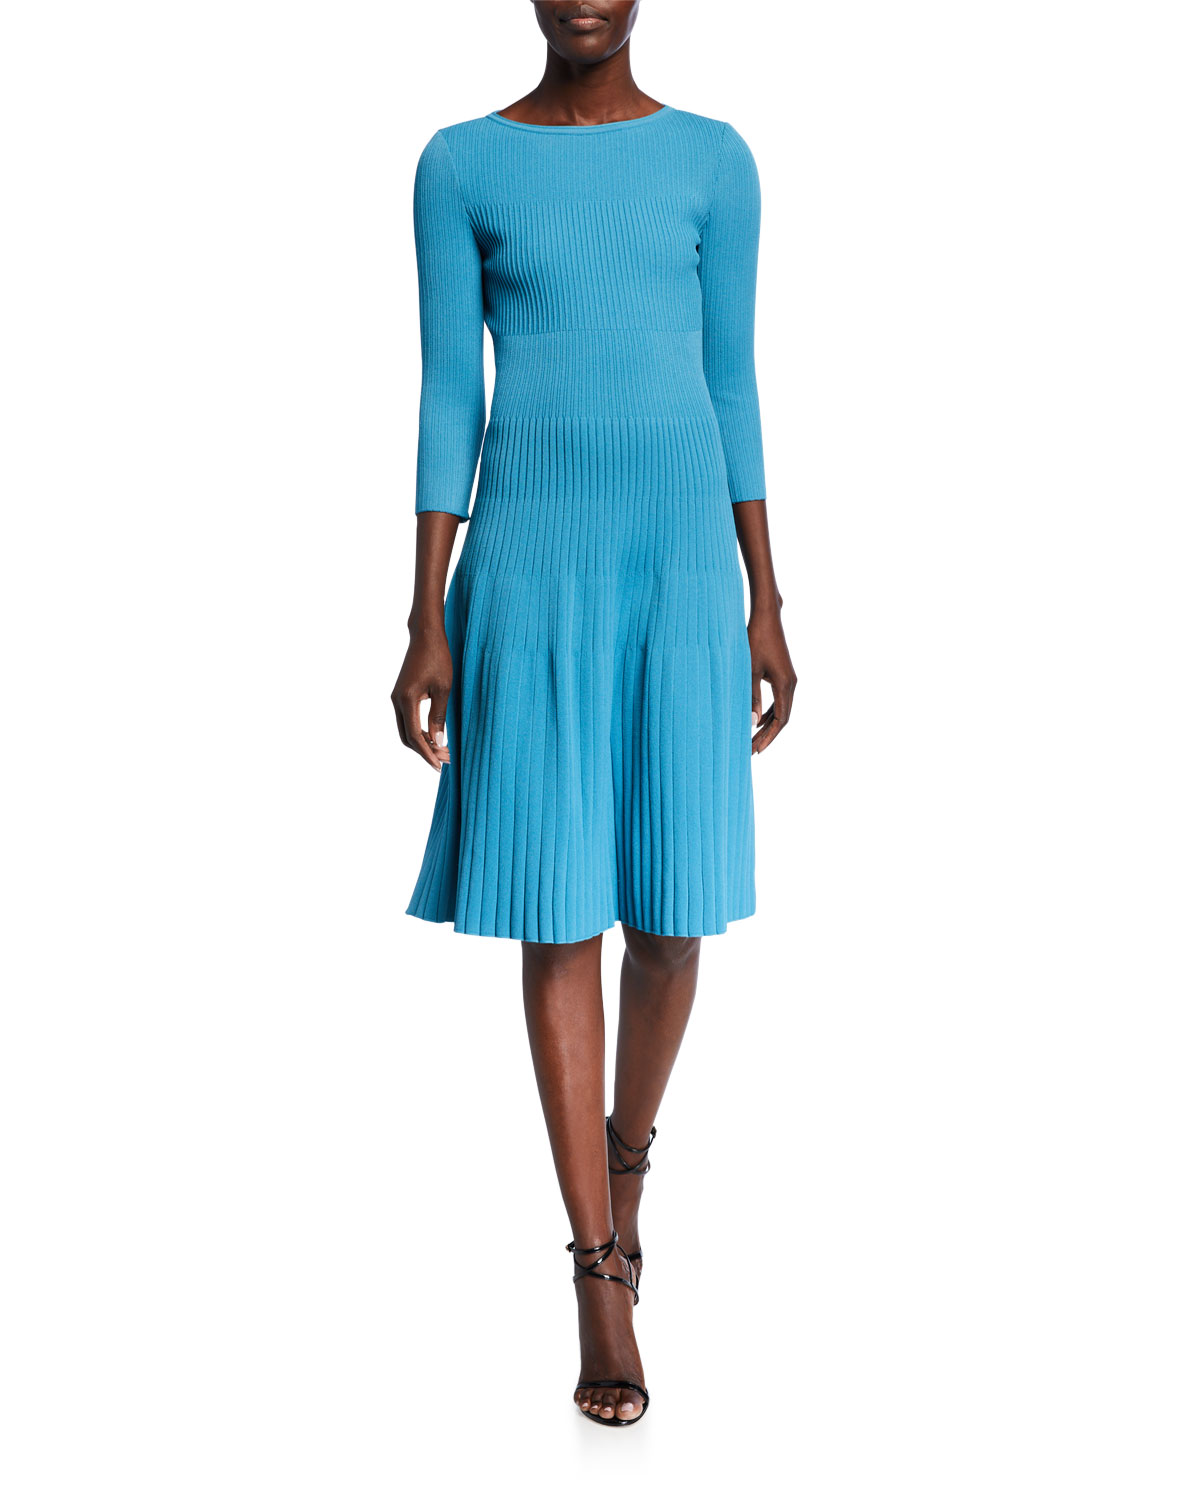 St. John Collection Engineered Rib Knit Bateau Neck Dress